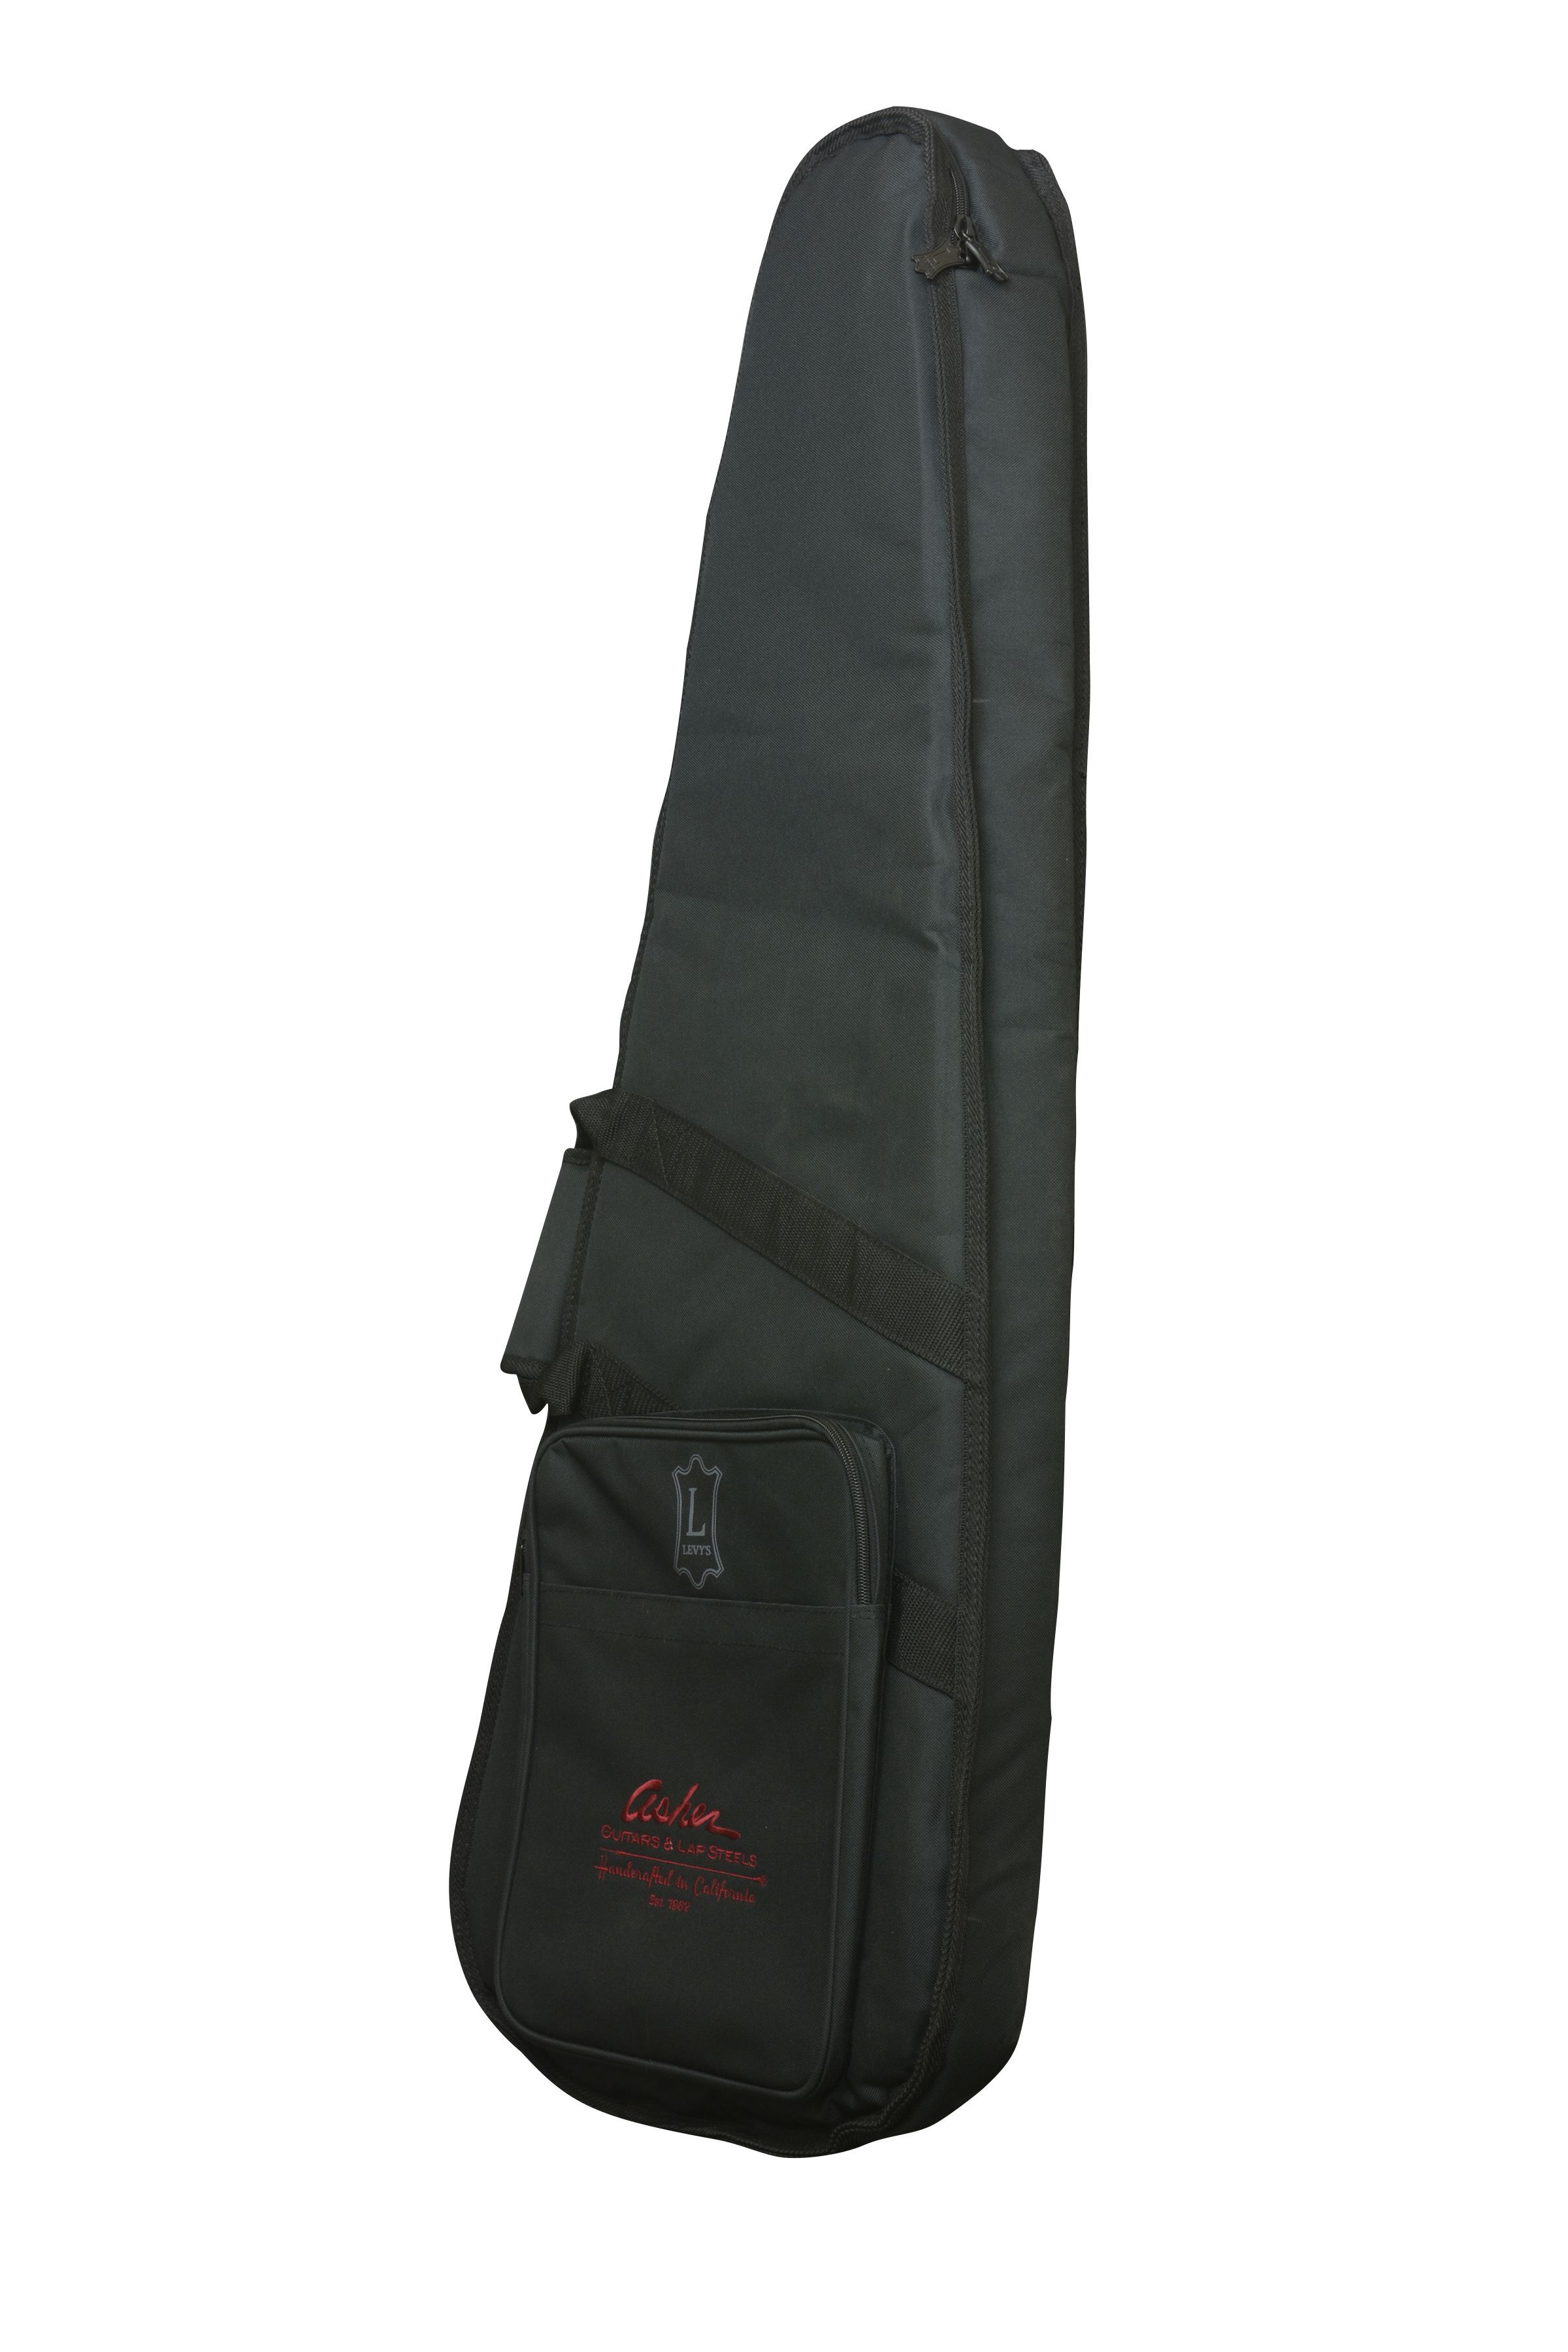 Asher deluxe gig bag by levys fits most asher guitars